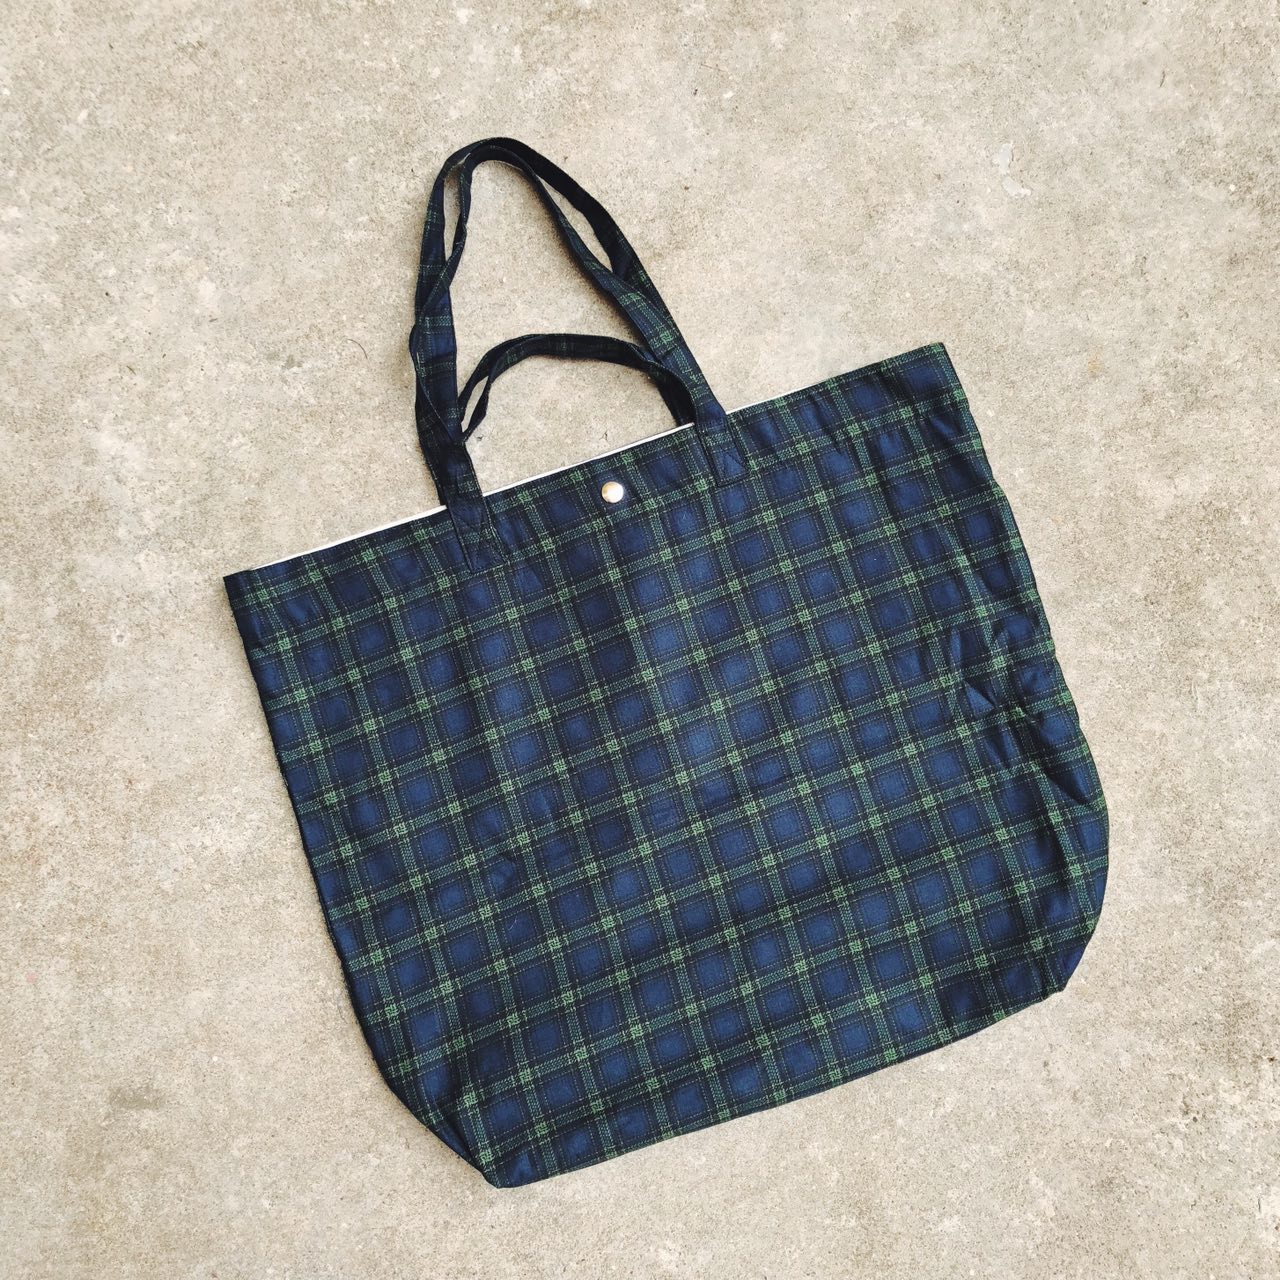 XLarge Tote - Gentlemen Checks